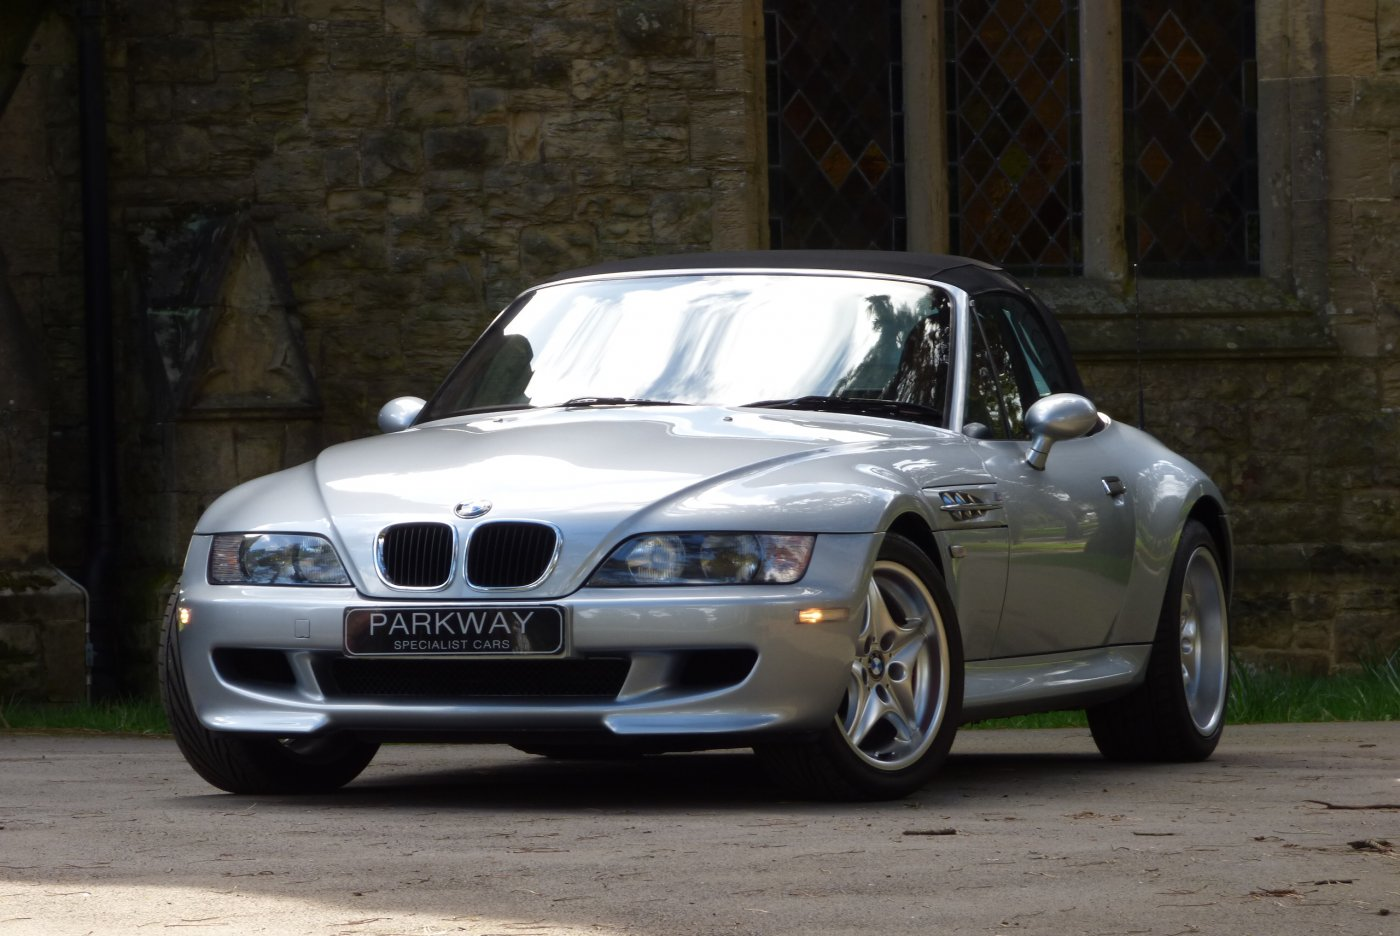 Bmw Z3m Coupe For Sale Used 1999 Bmw Z3m Coupe For Sale In